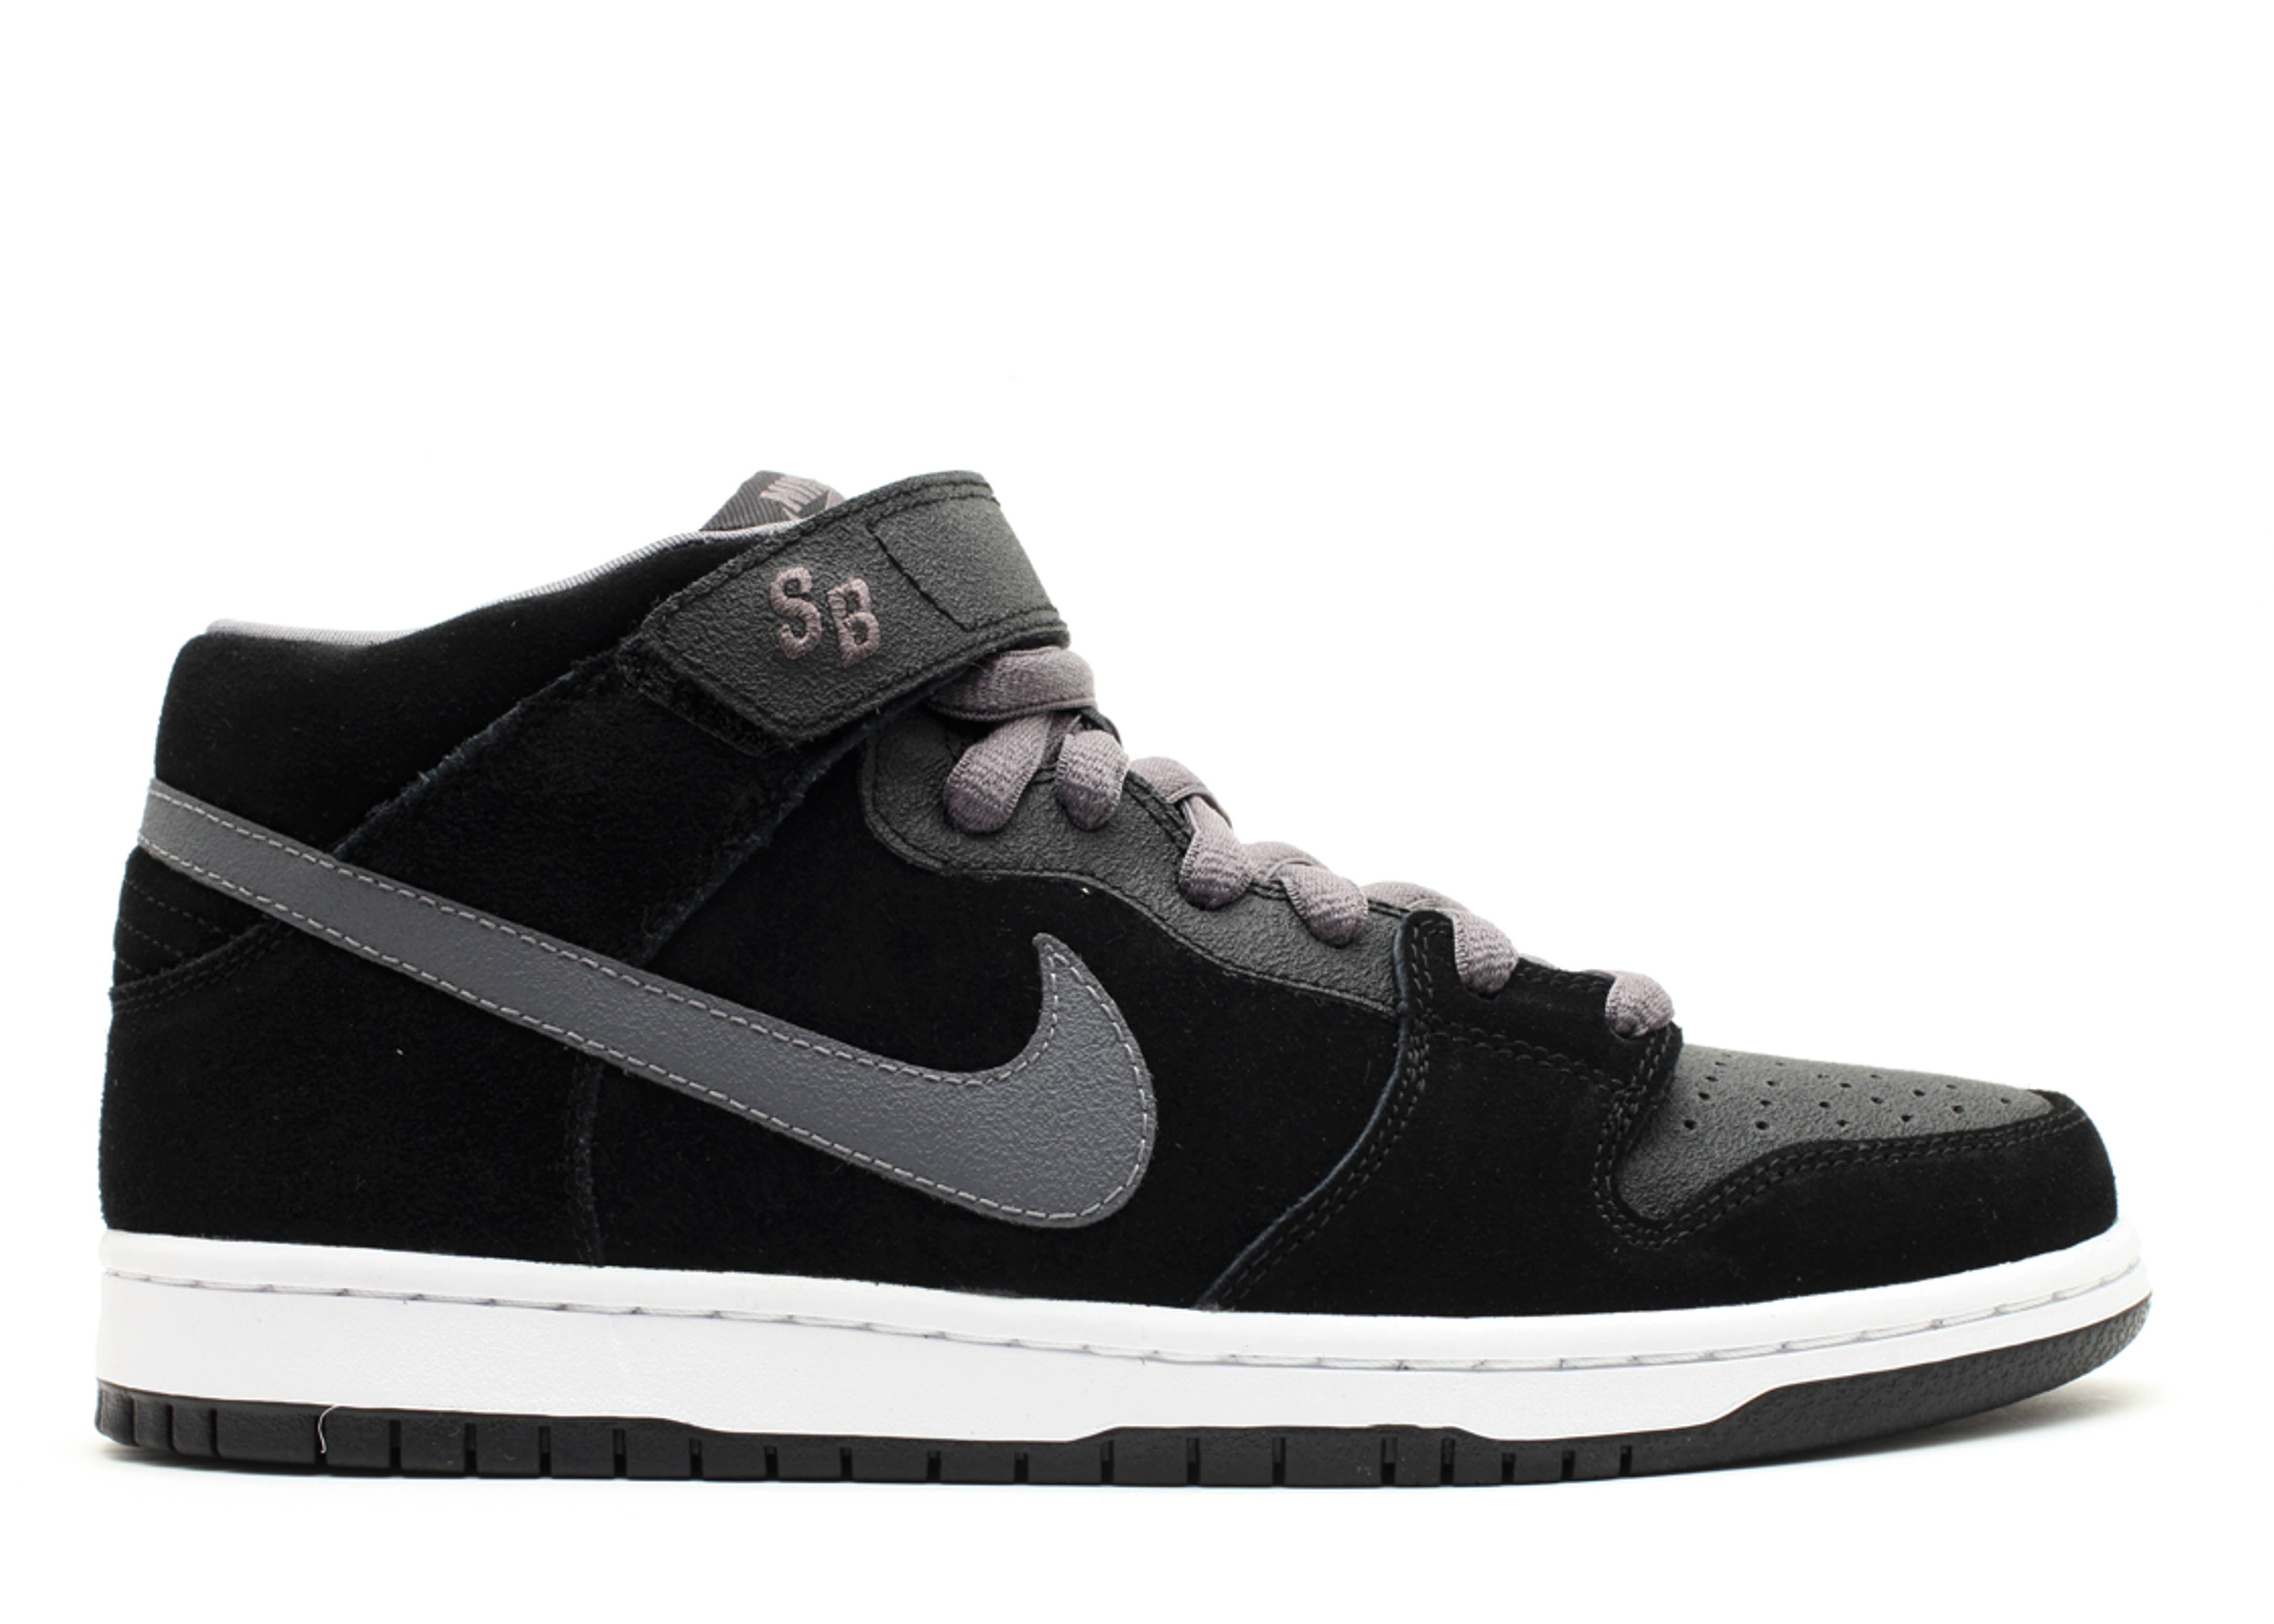 separation shoes ba9df 21a57 nike. dunk mid pro sb